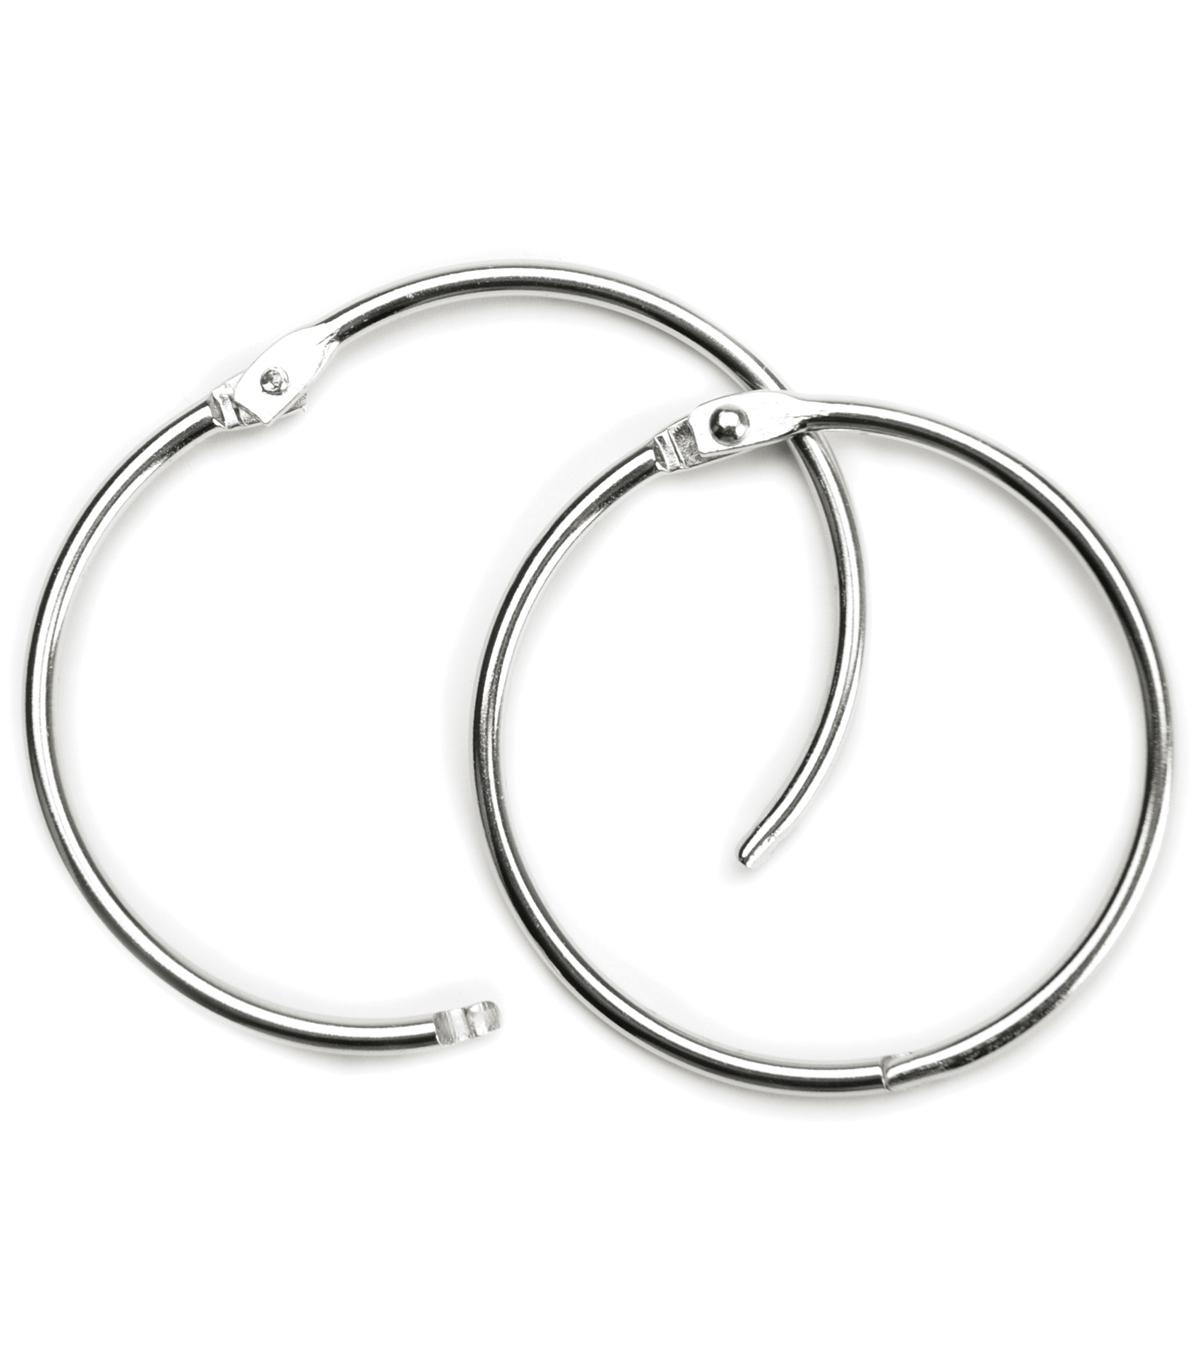 Baumgartens 2\u0022 Book Rings 2 Pack-Silver